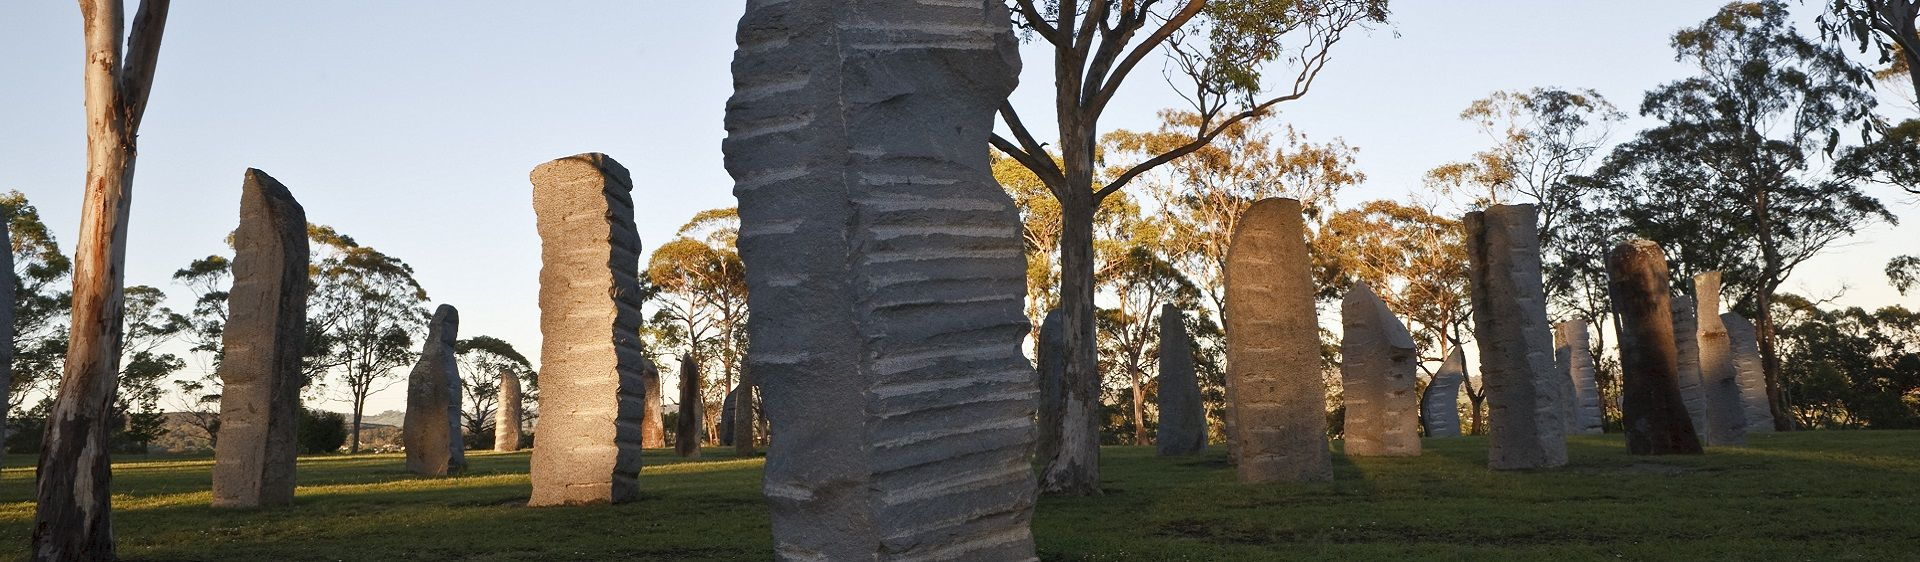 Celtic heritage tribute the Australian Standing Stones, Glen Innes